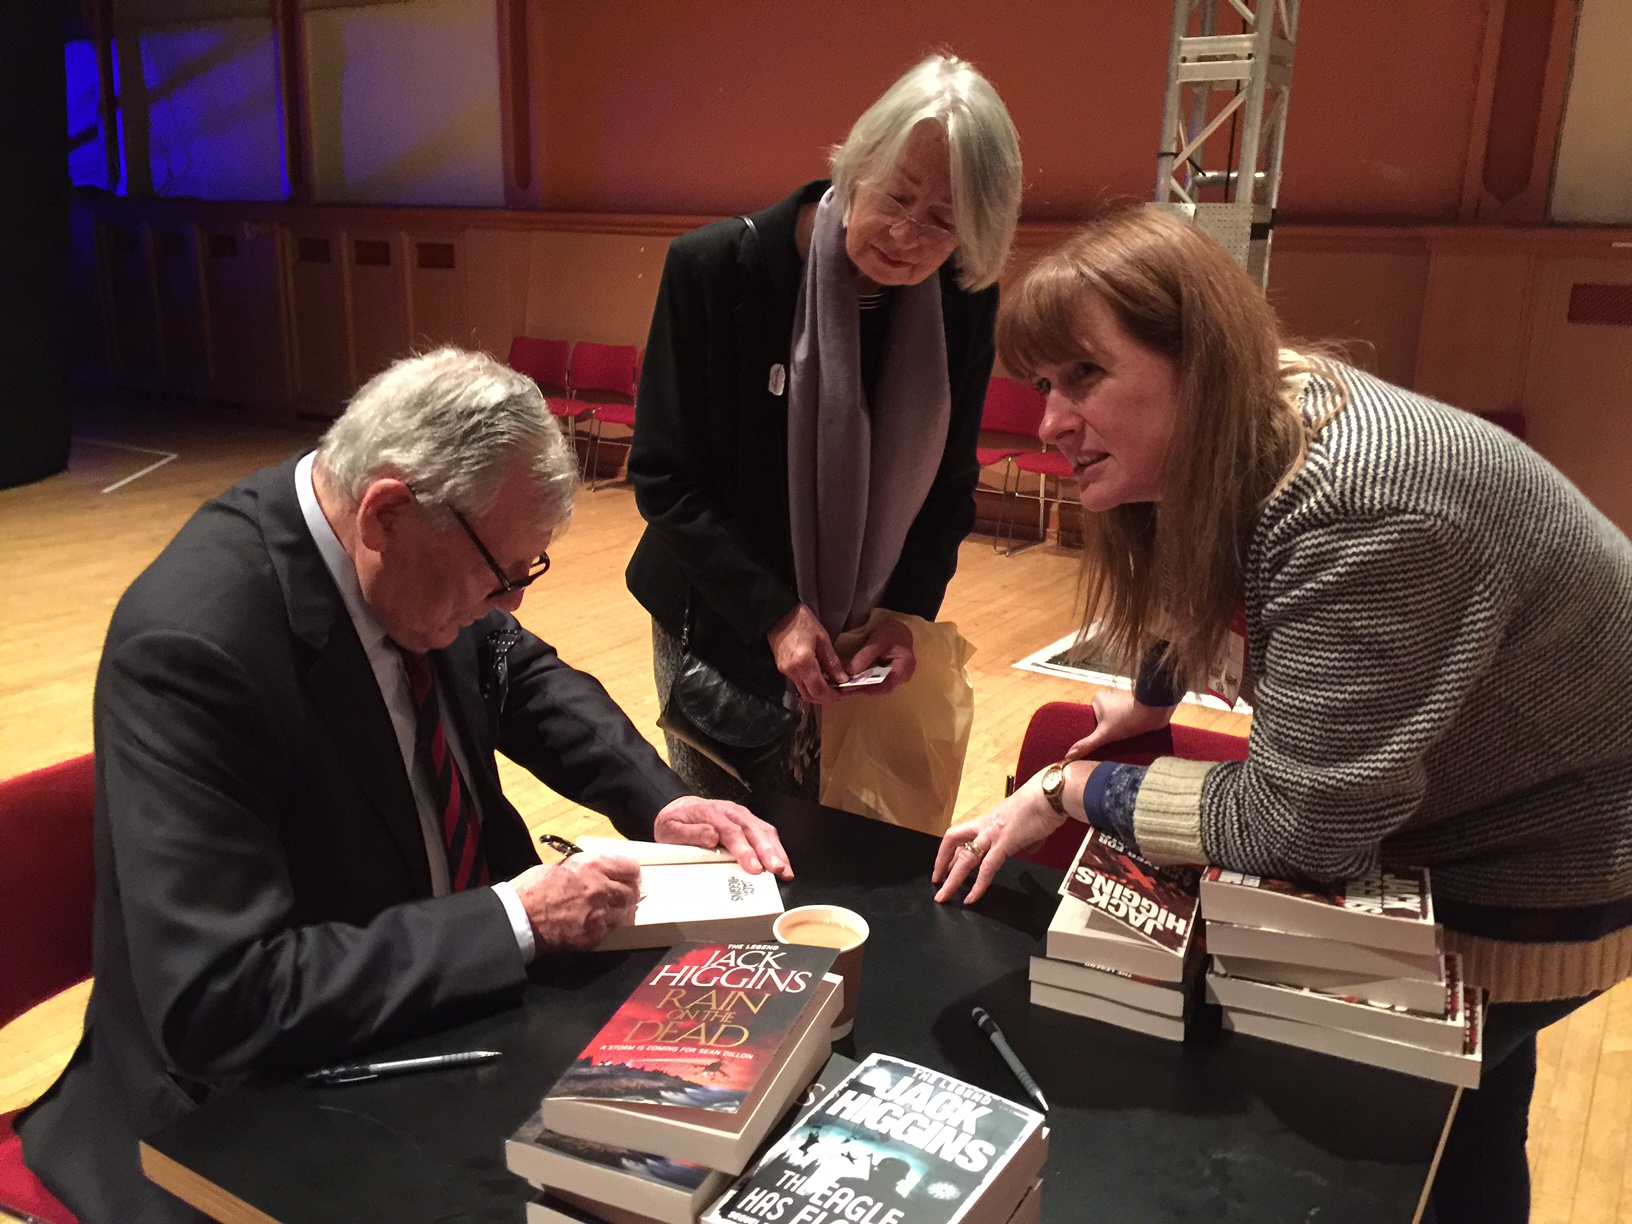 Harry signs books